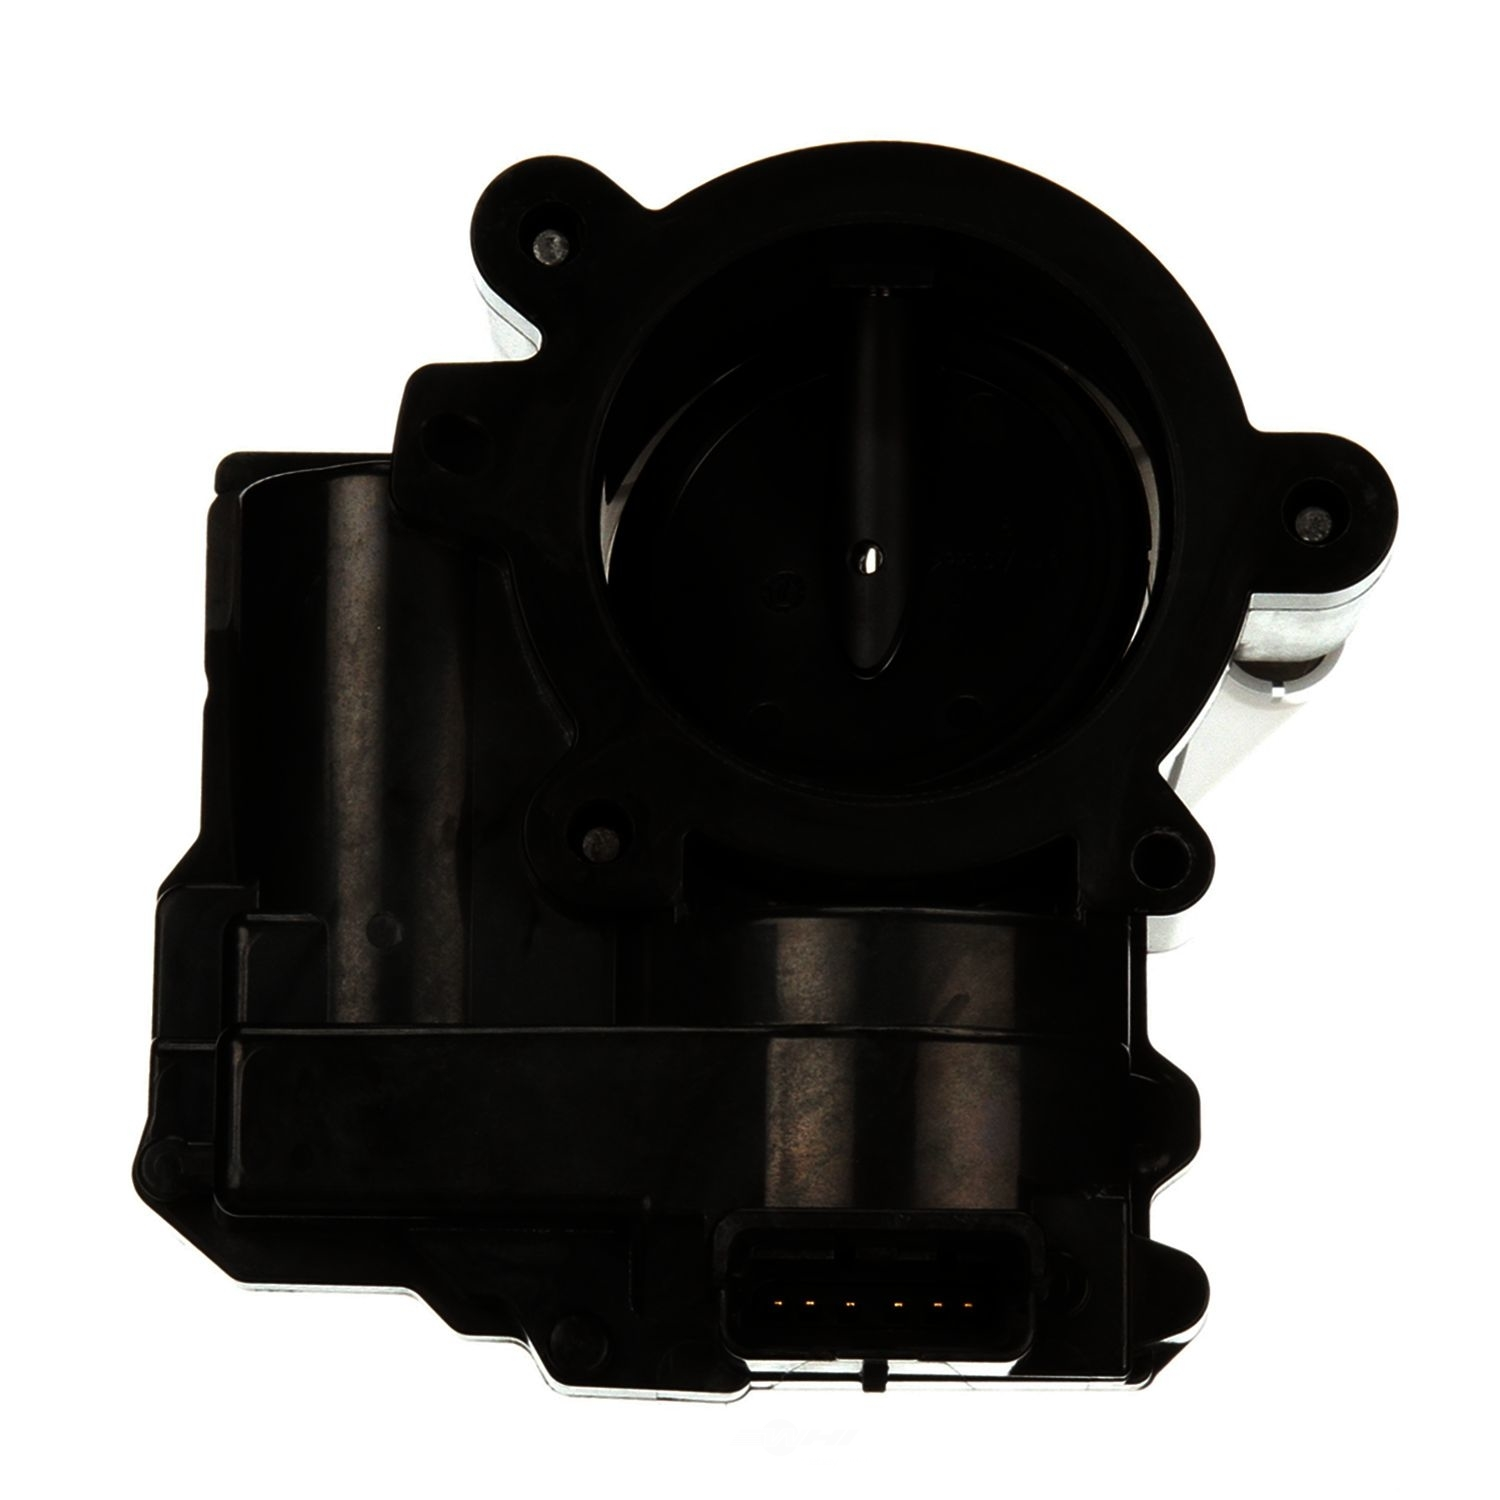 VDO - Fuel Injection Throttle Body Assembly - SIE A2C59513207